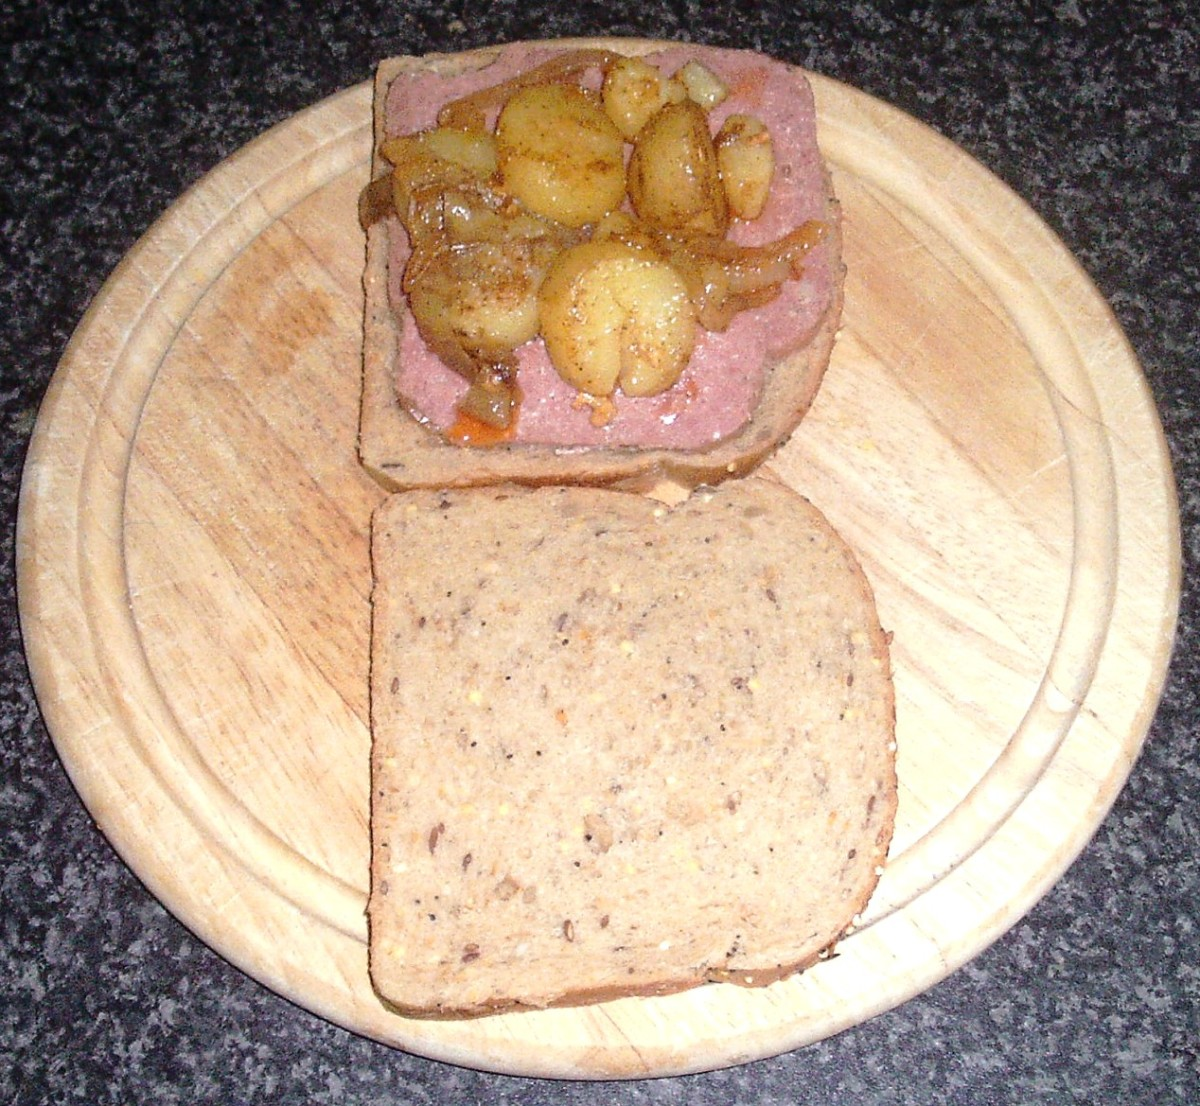 Fried potatoes and onions are arranged on top of corned beef